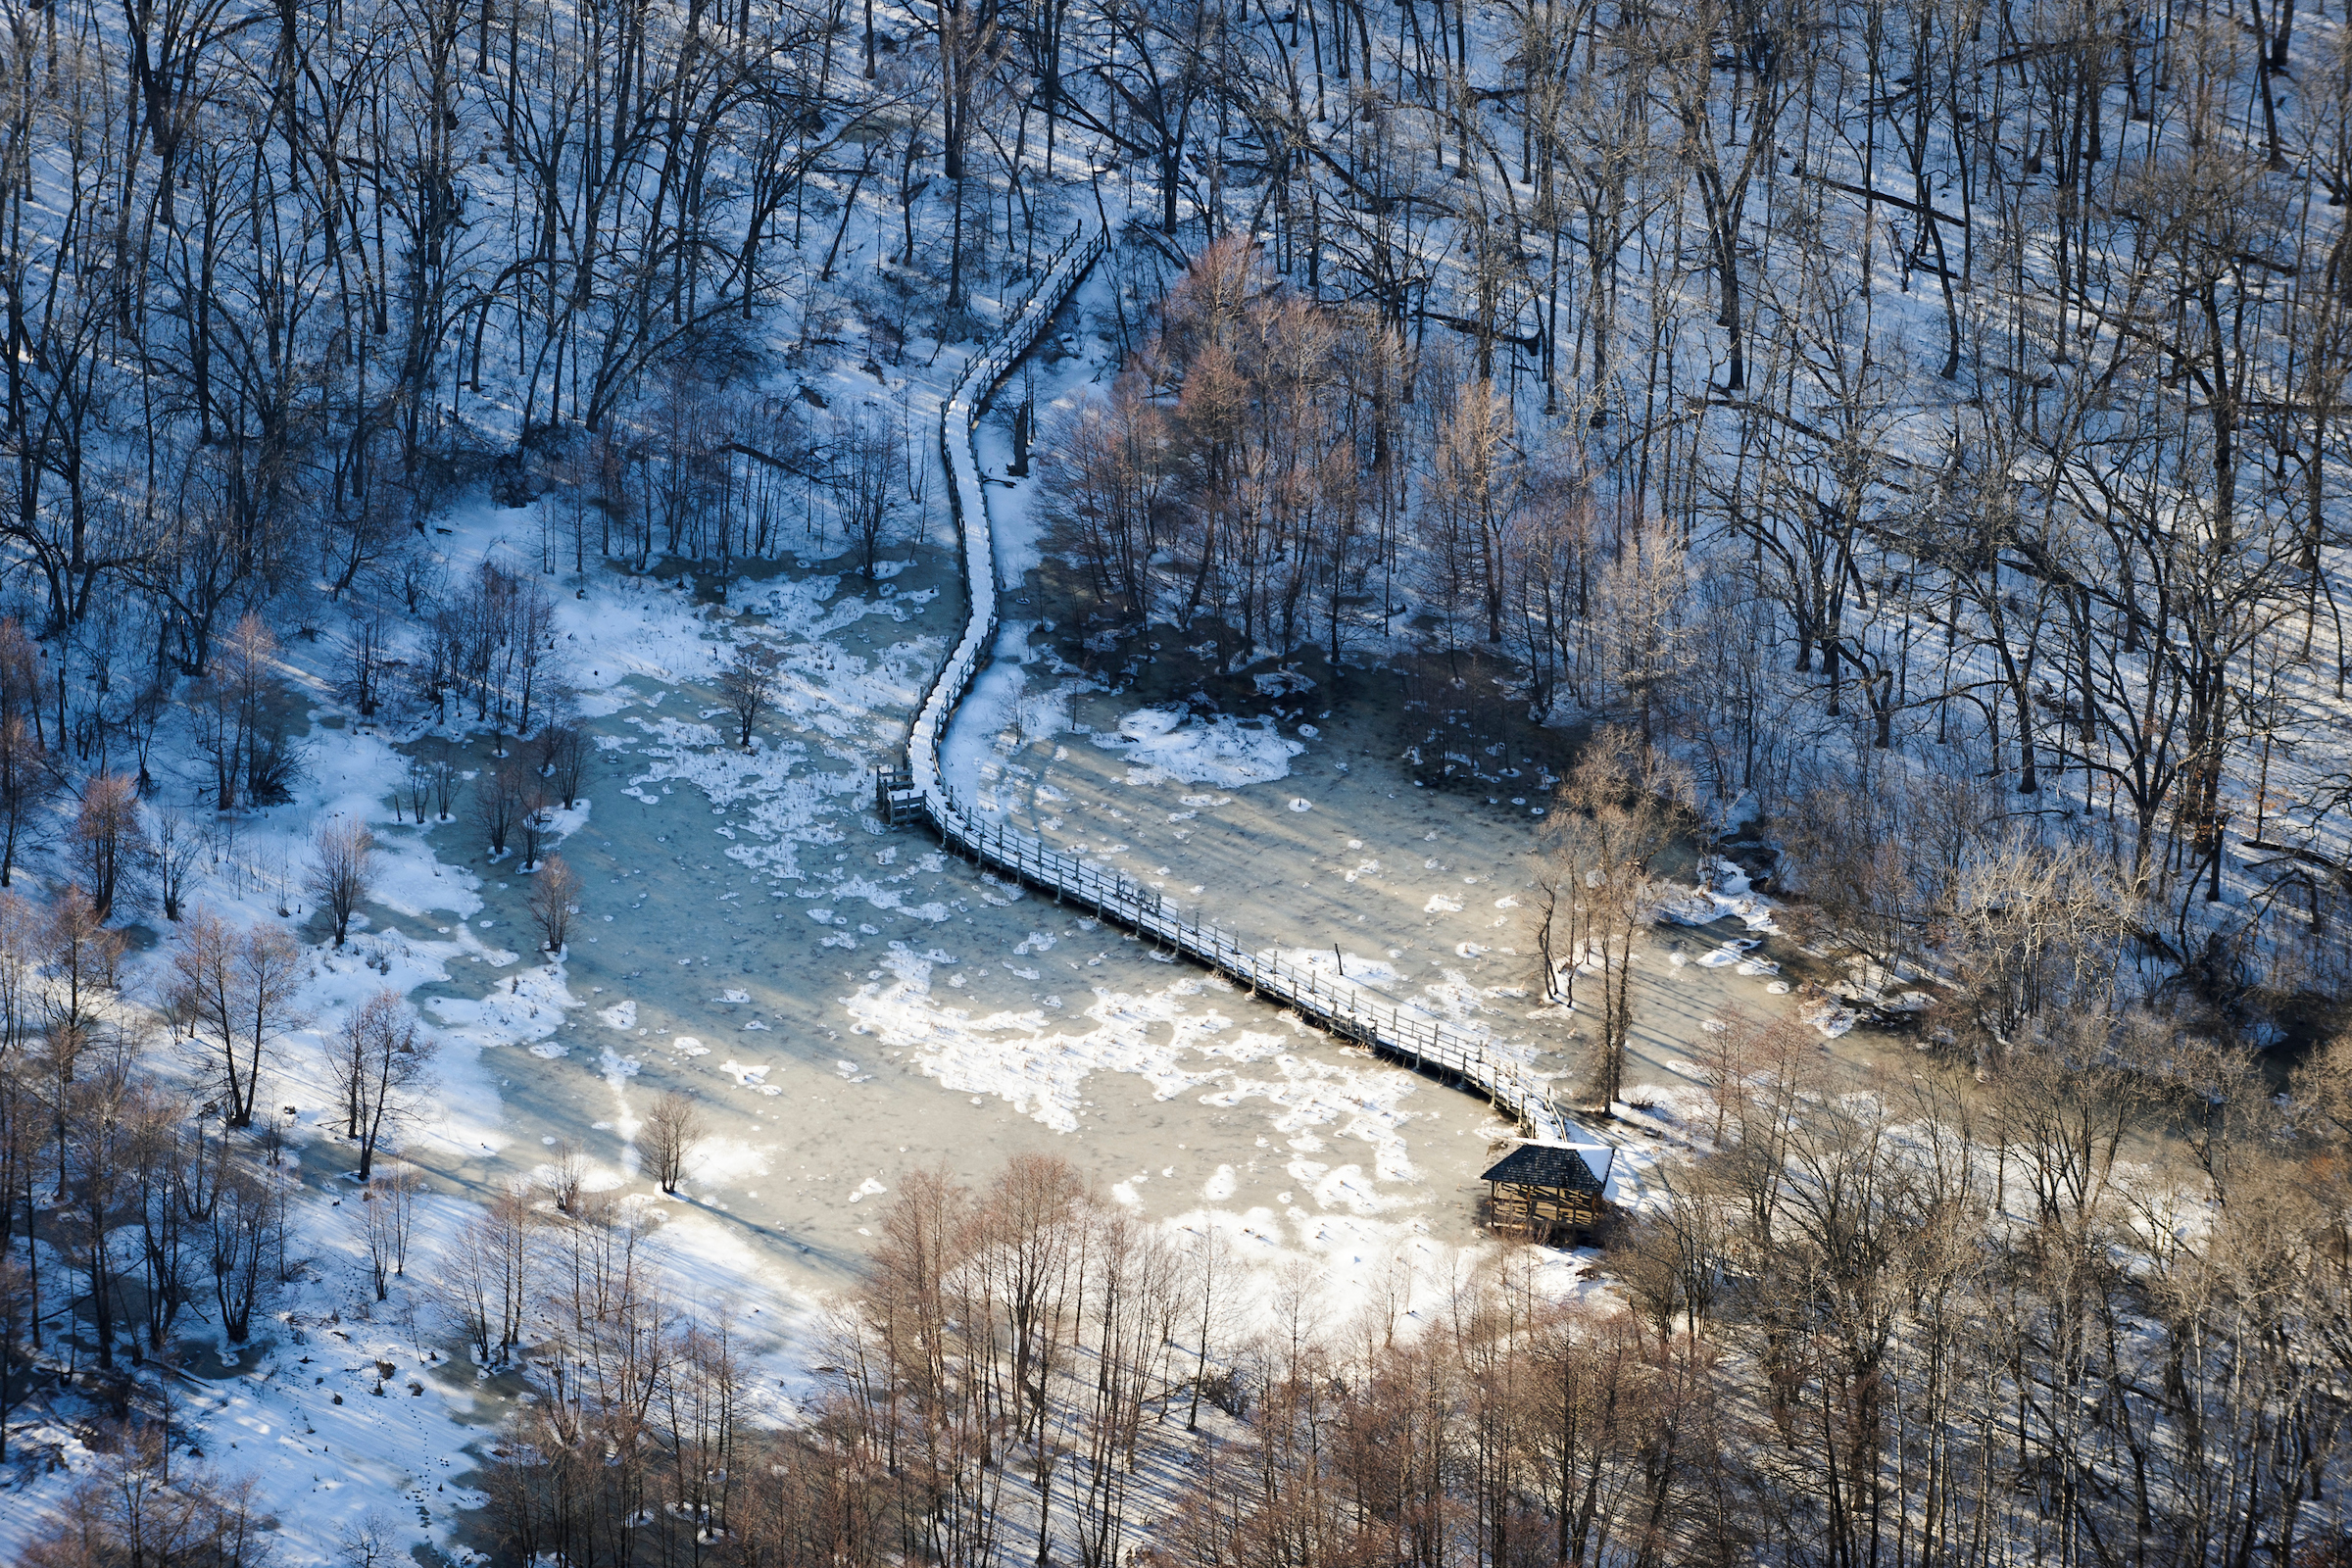 Icke Boardwalk winds from the woods through a wetland area north of Teal Pond as pictured in an aerial view of the snow-covered University of Wisconsin–Madison Arboretum during winter on March 13, 2013. The photograph was made from a small plane looking north. (Photo by Jeff Miller/UW–Madison)